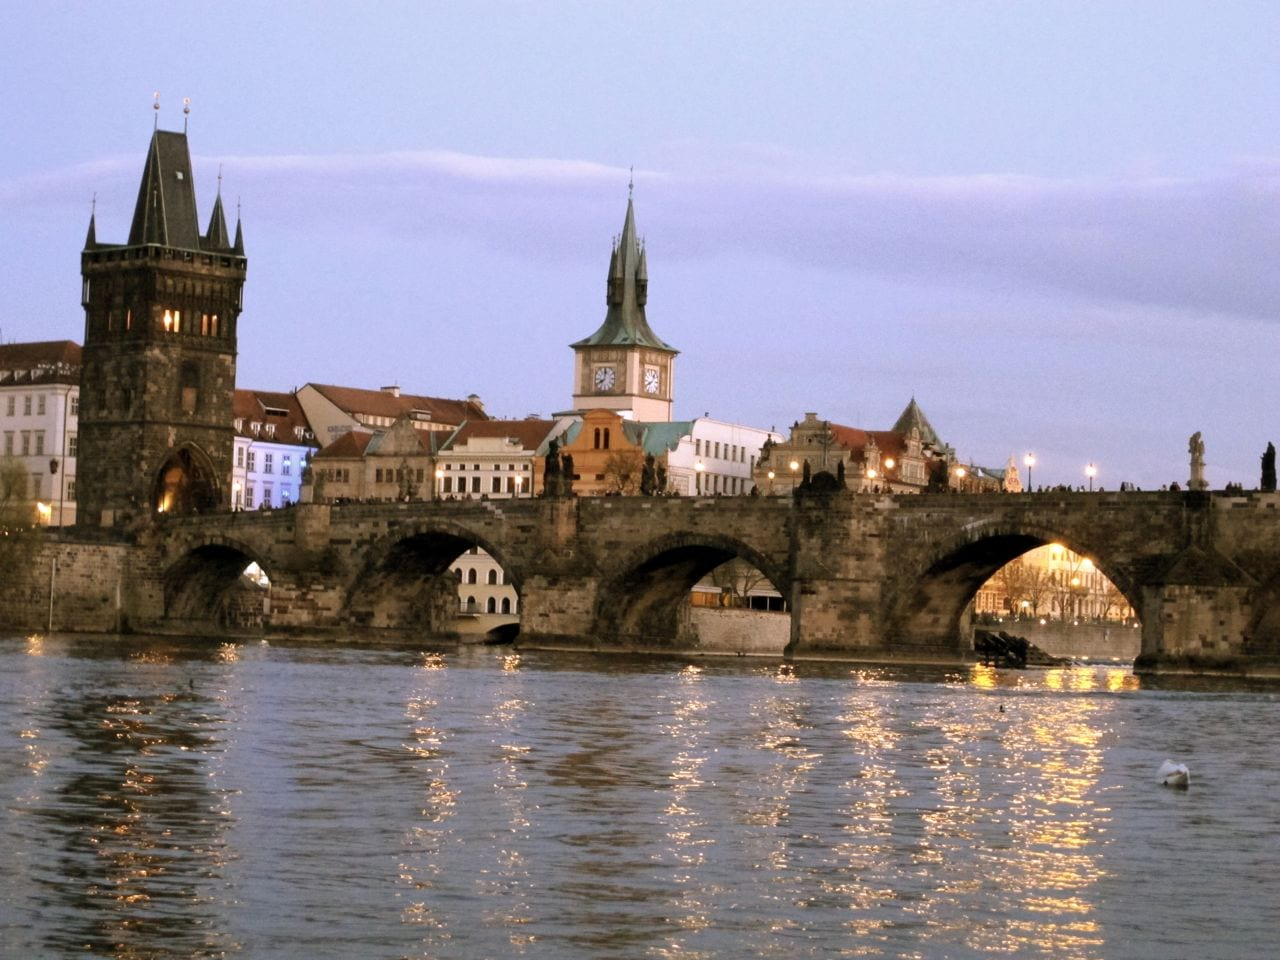 Dusk at the Charles Bridge